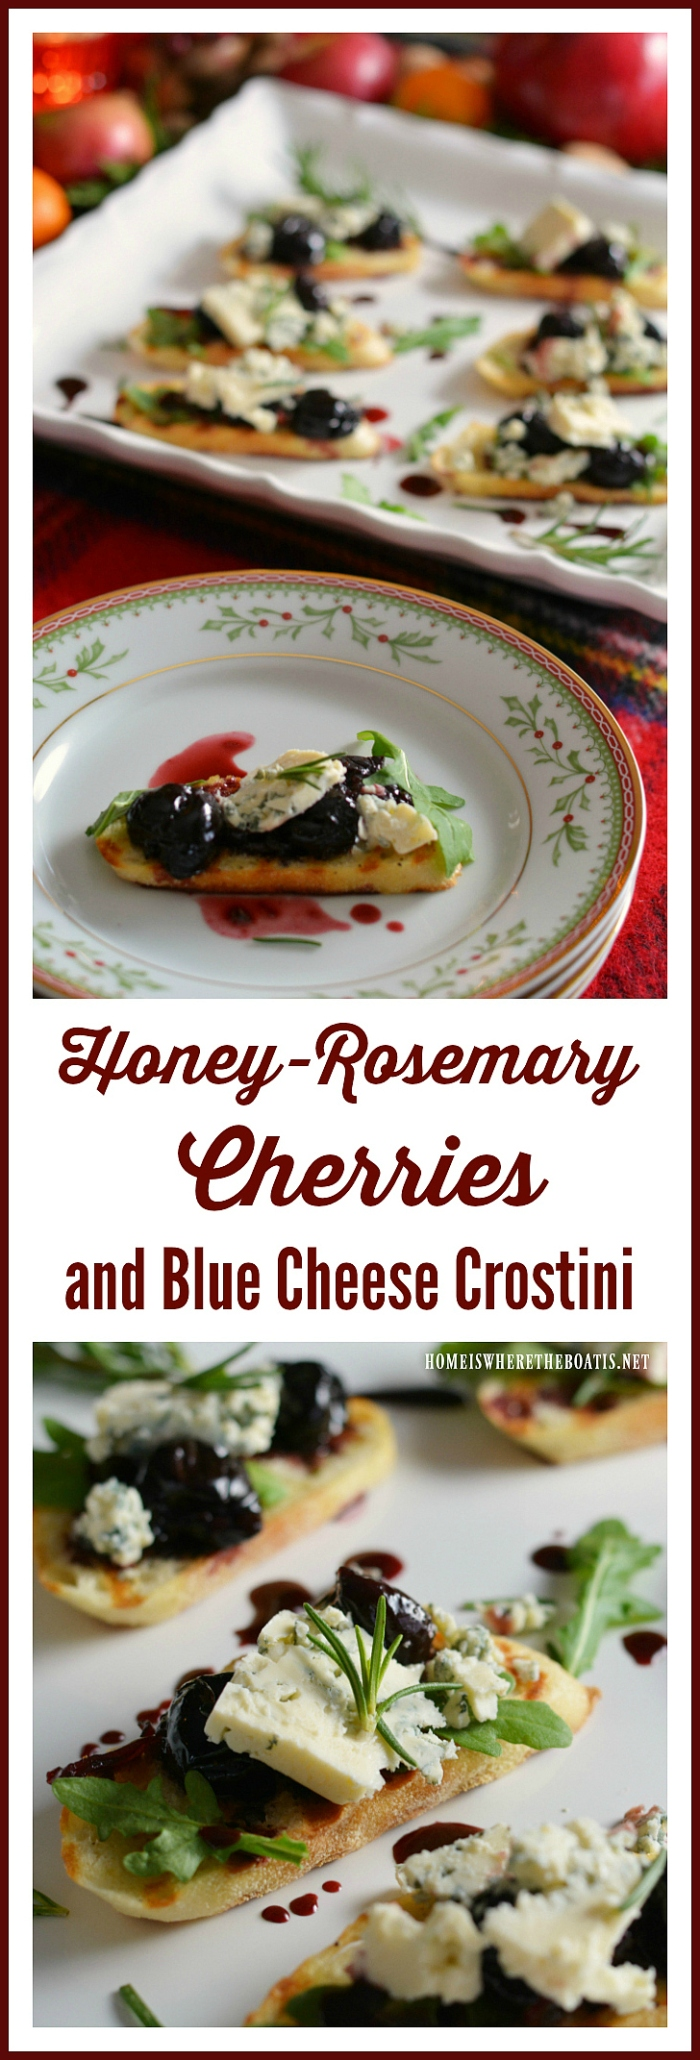 honey-rosemary-cherries-and-blue-cheese-crostini2